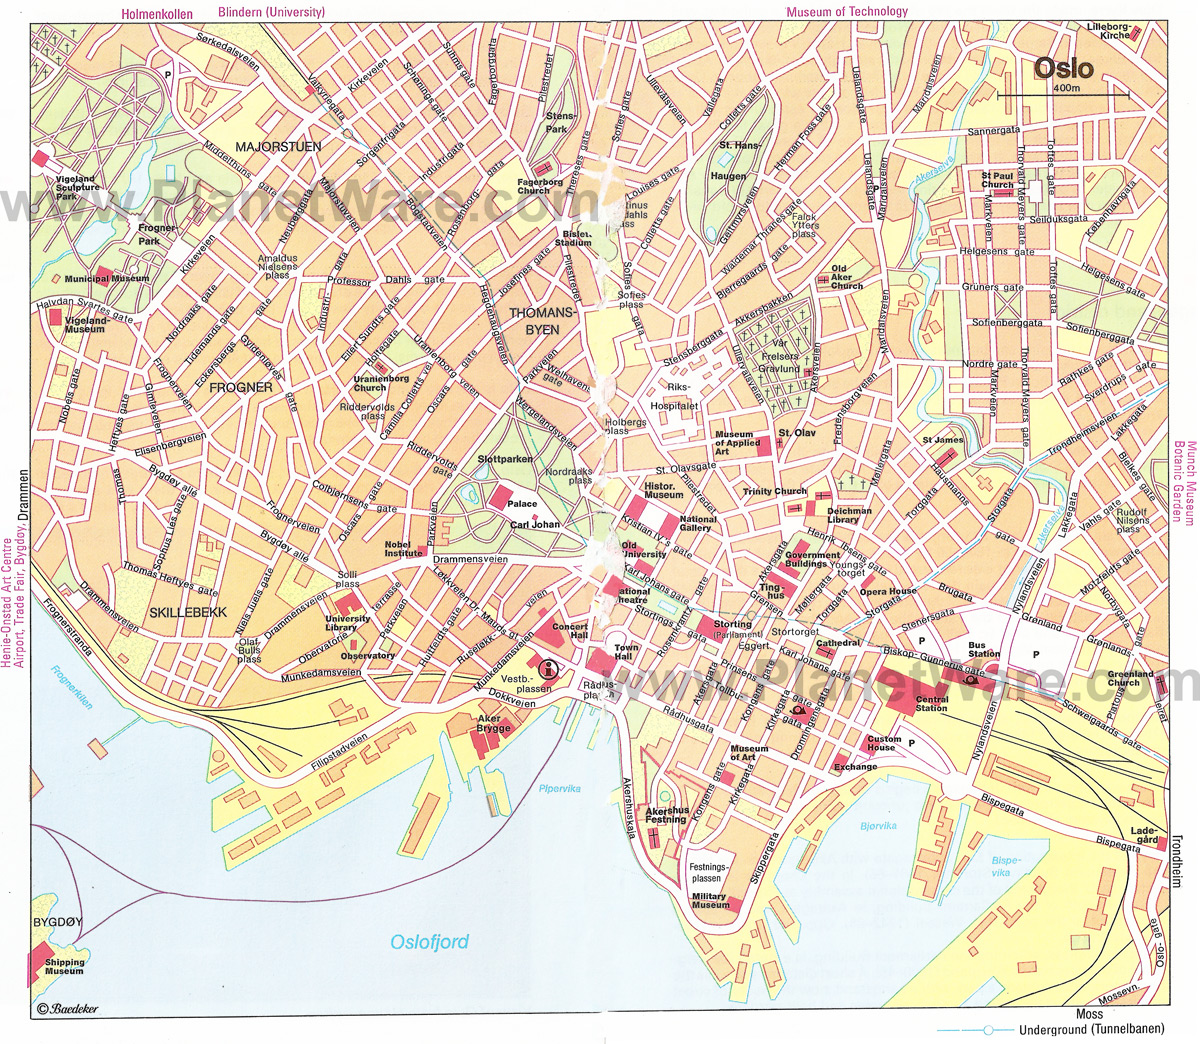 photograph about Printable Map of Norway referred to as Oslo Map - Thorough Town and Metro Maps of Oslo for Down load